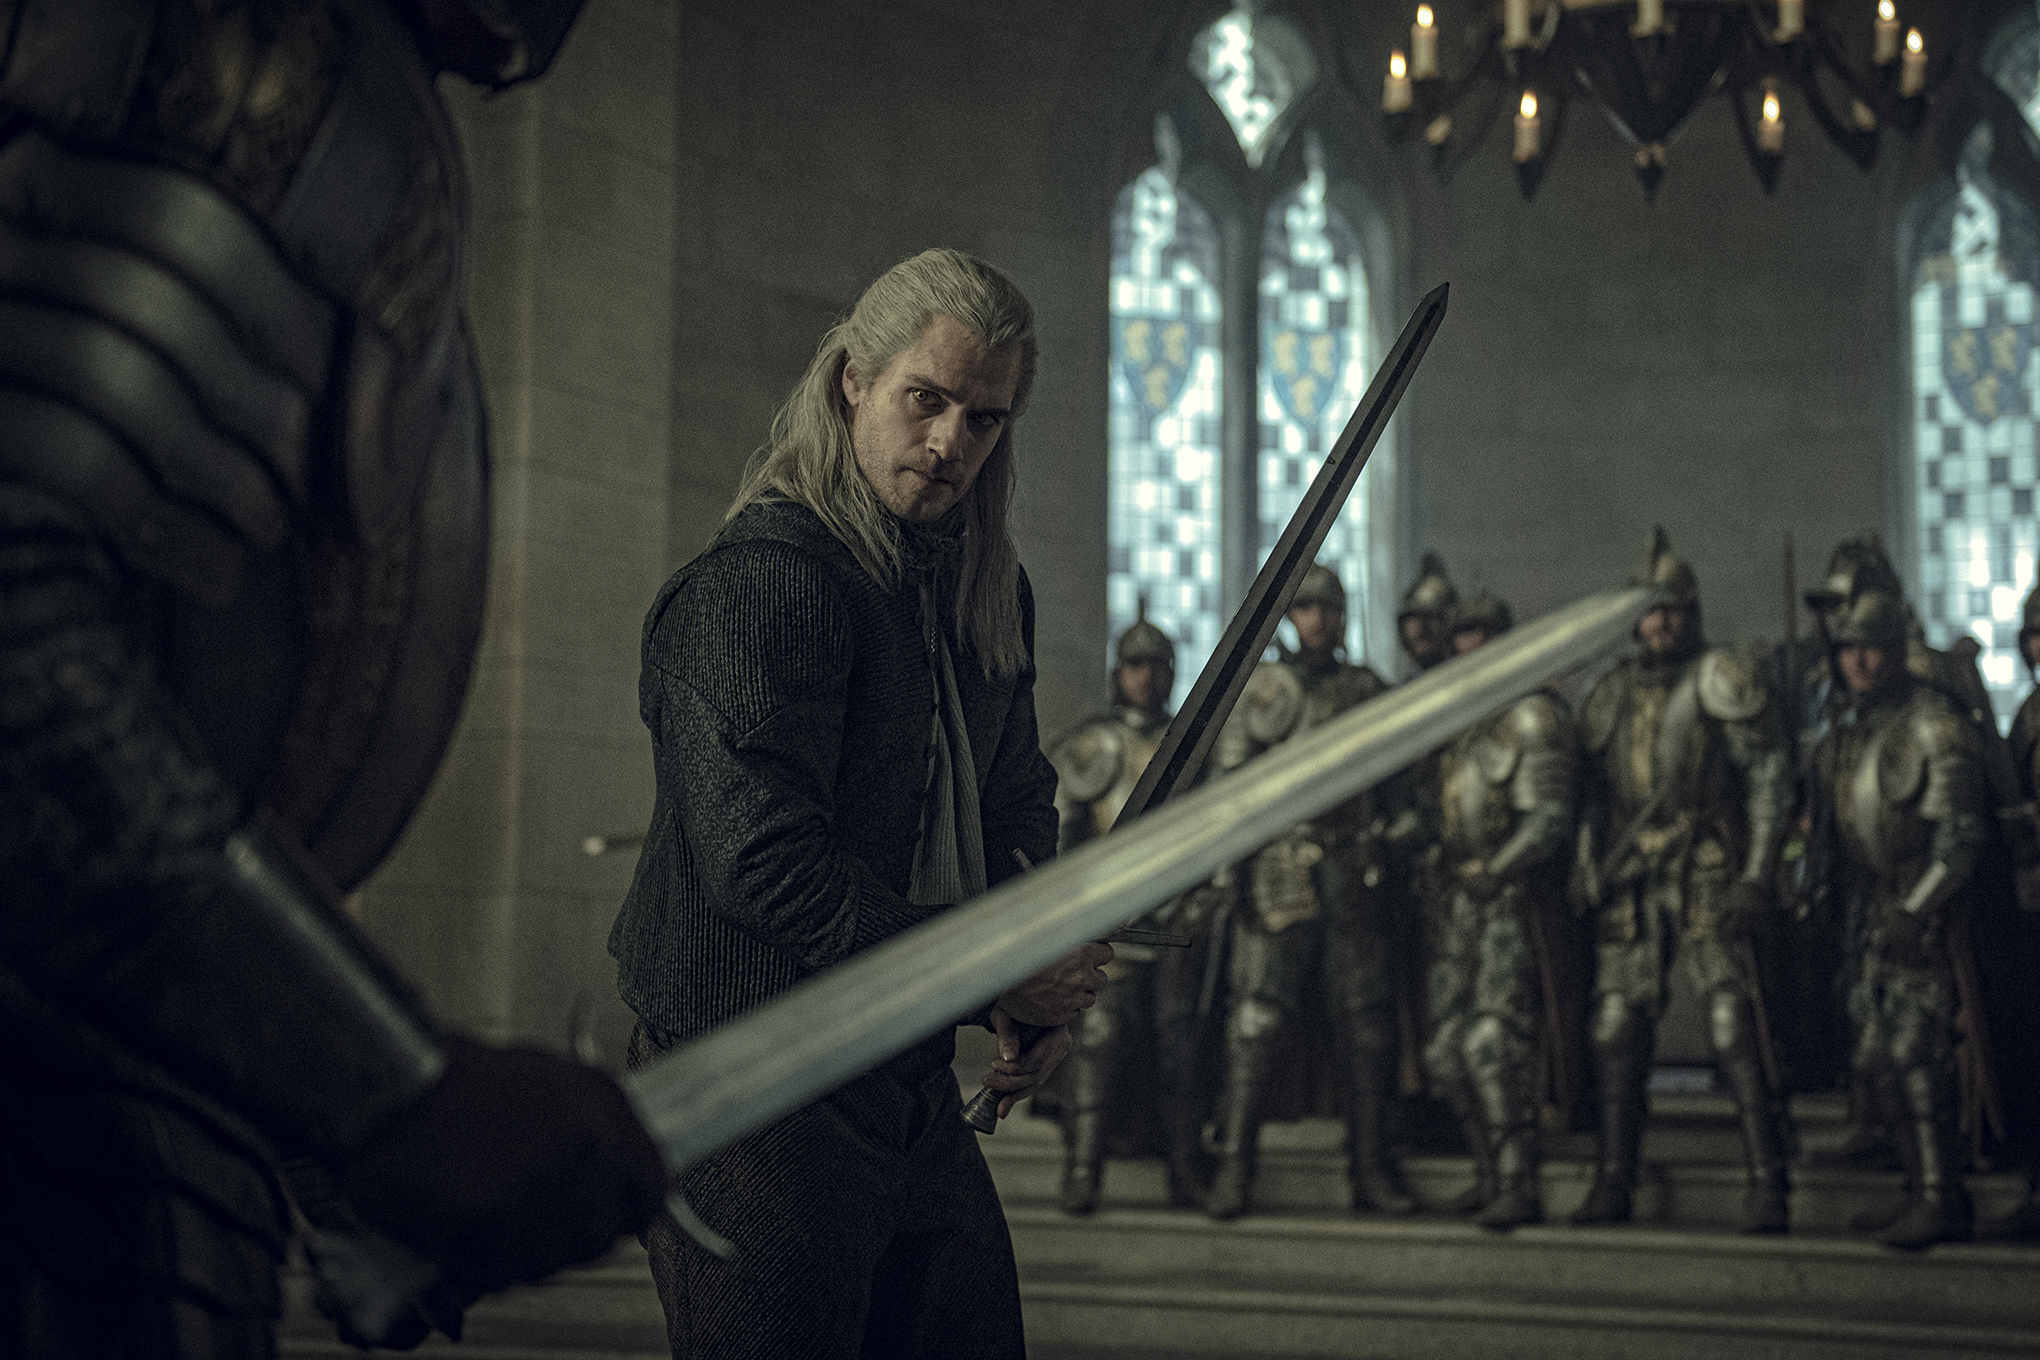 Henry Cavill as Geralt of Rivia squares up on an armored knight in The Witcher on Netflix.